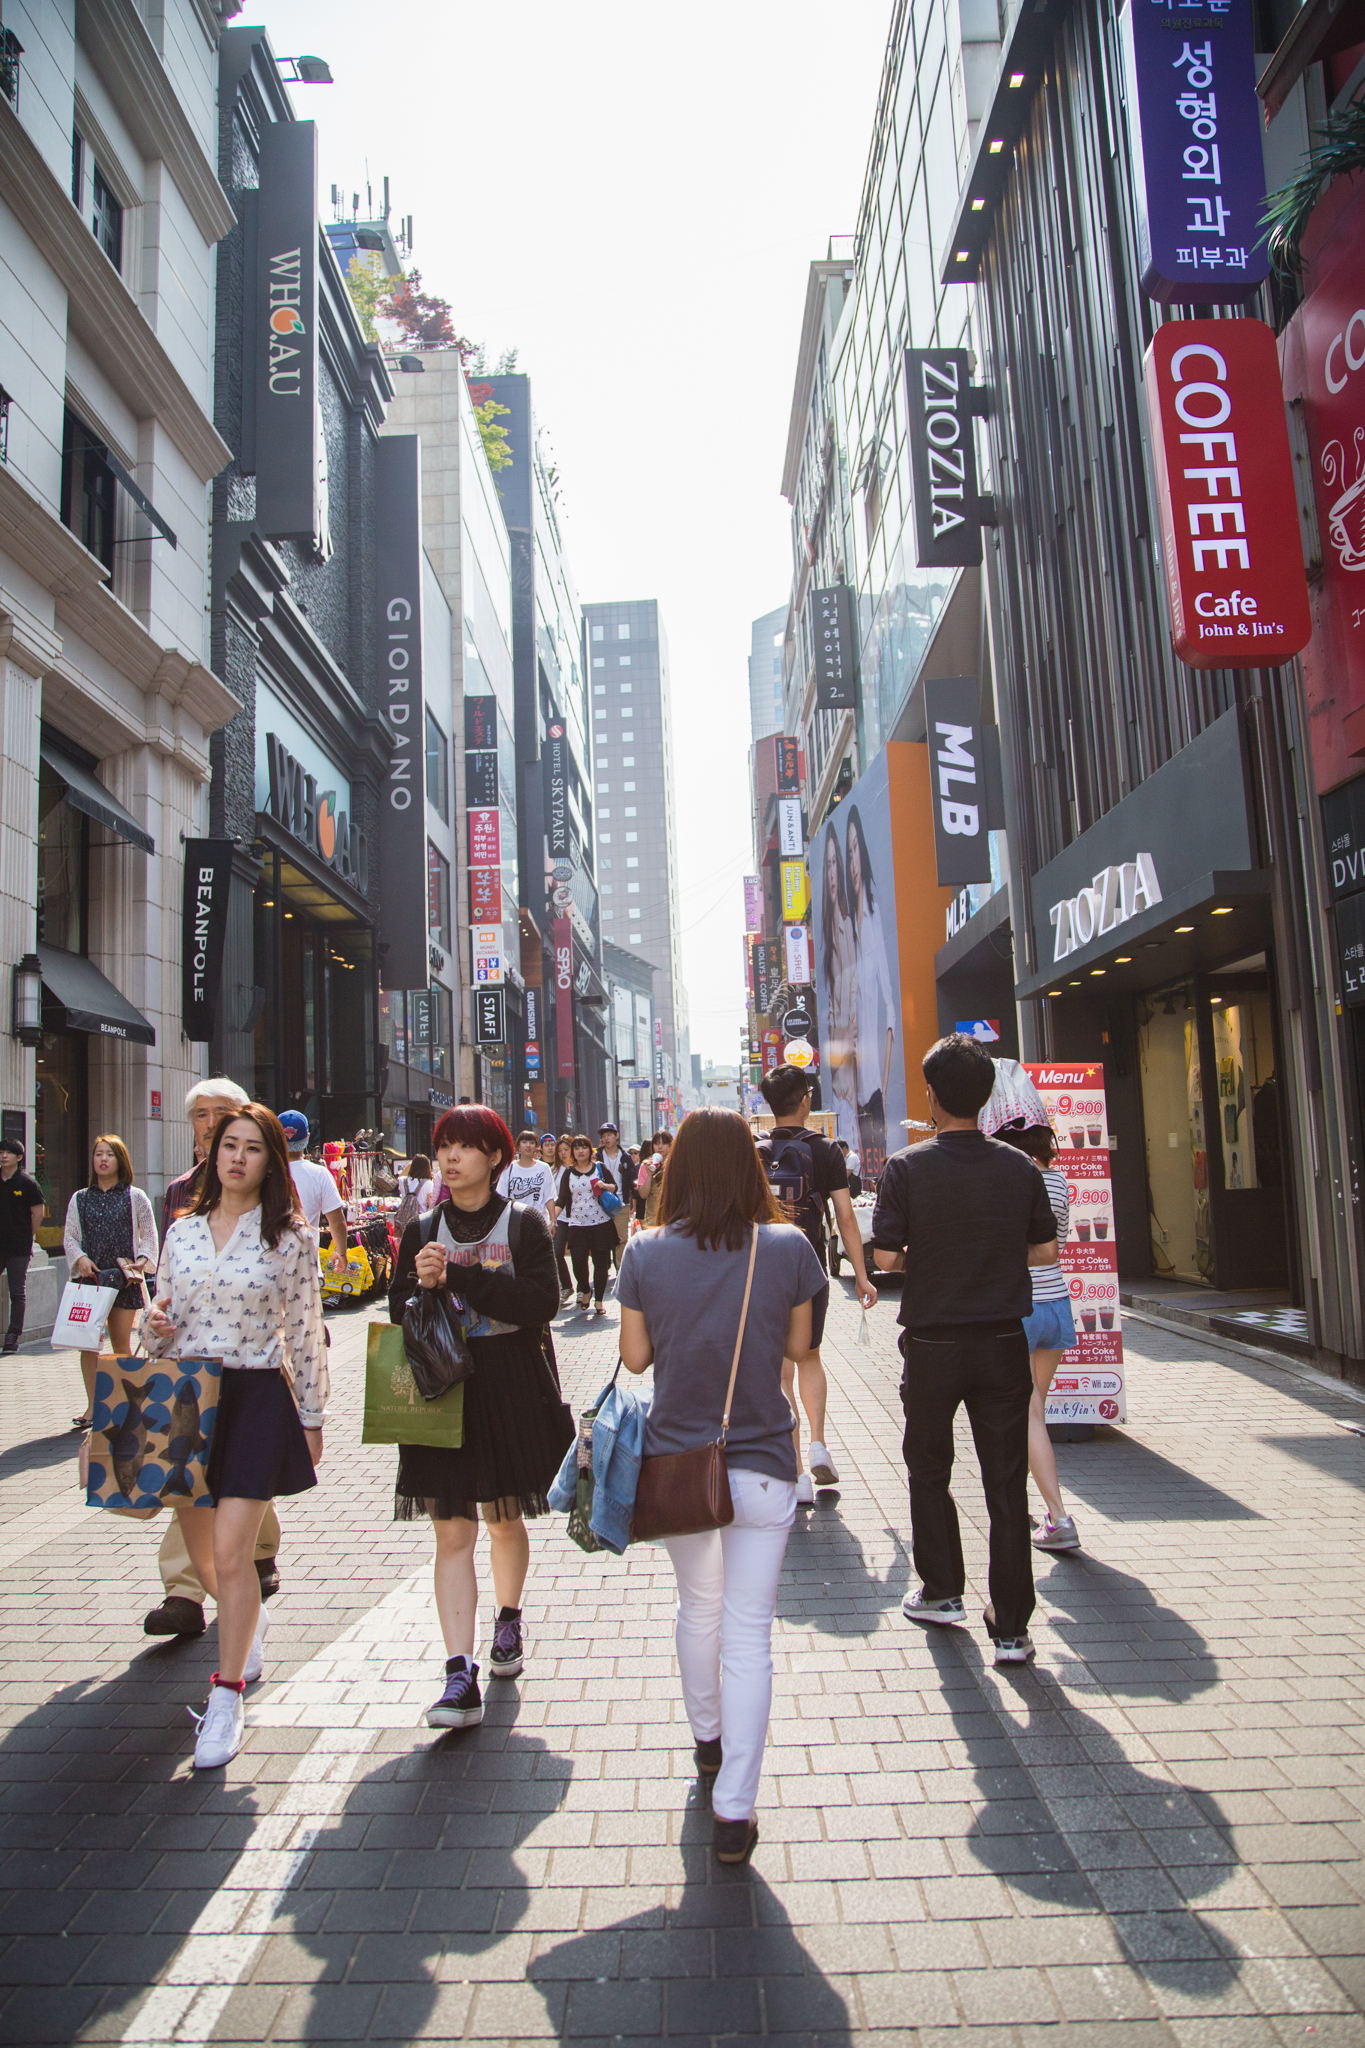 Myeong-dong Street: Korea's most widely known shopping town